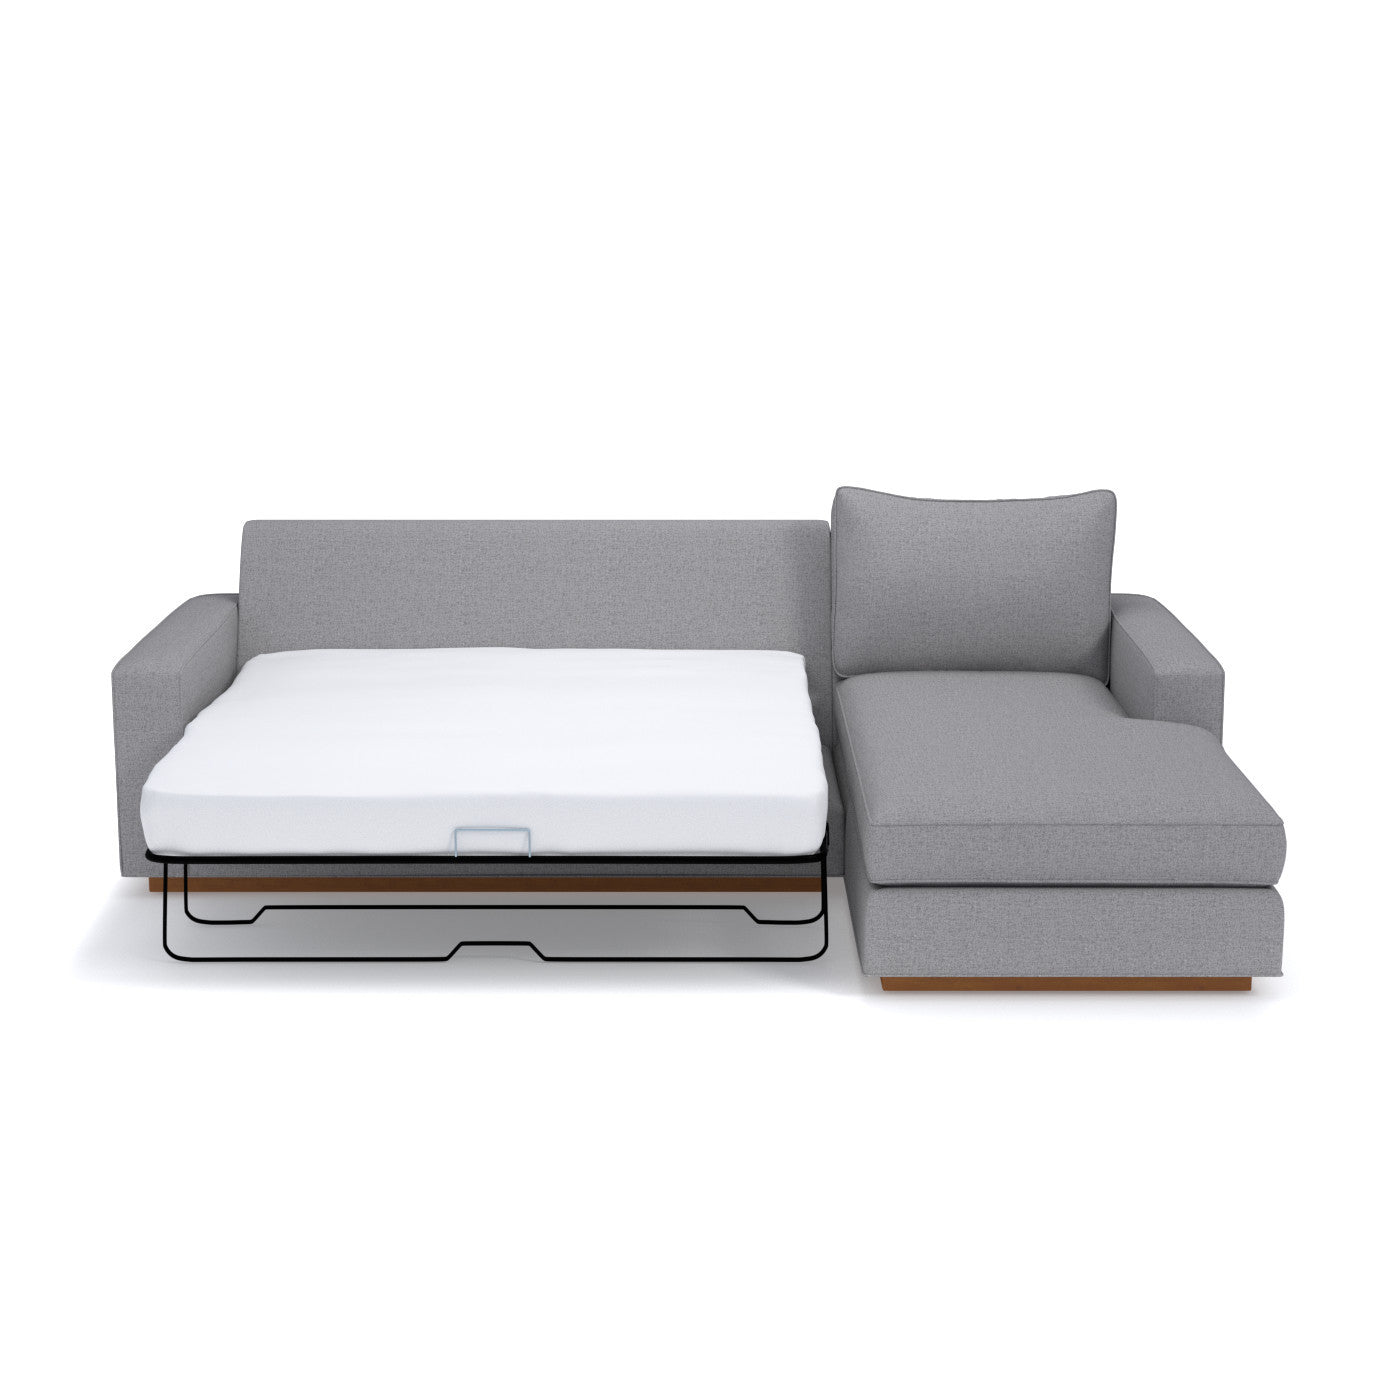 Harper 2pc Sectional Sleeper Sofa CHOICE OF FABRICS – Apt2B